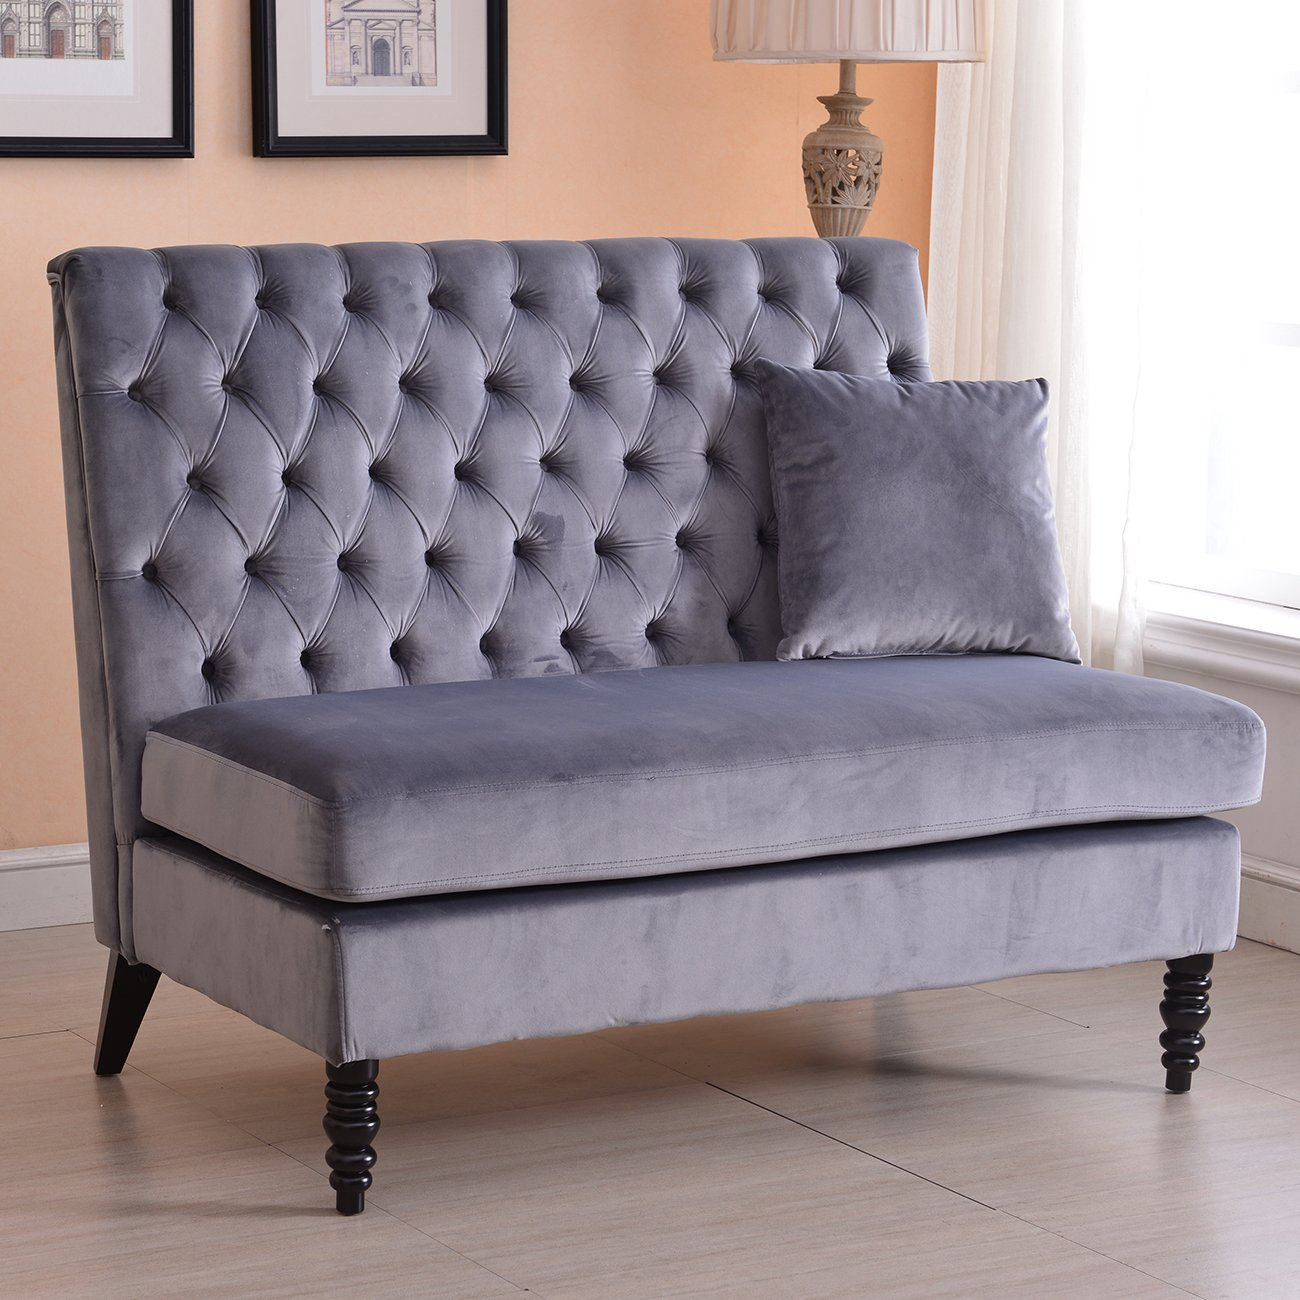 Belleze Modern Button Tufted Settee Bedroom Bench Loveseat Sofa Living Room Velvet, Gray by Belleze